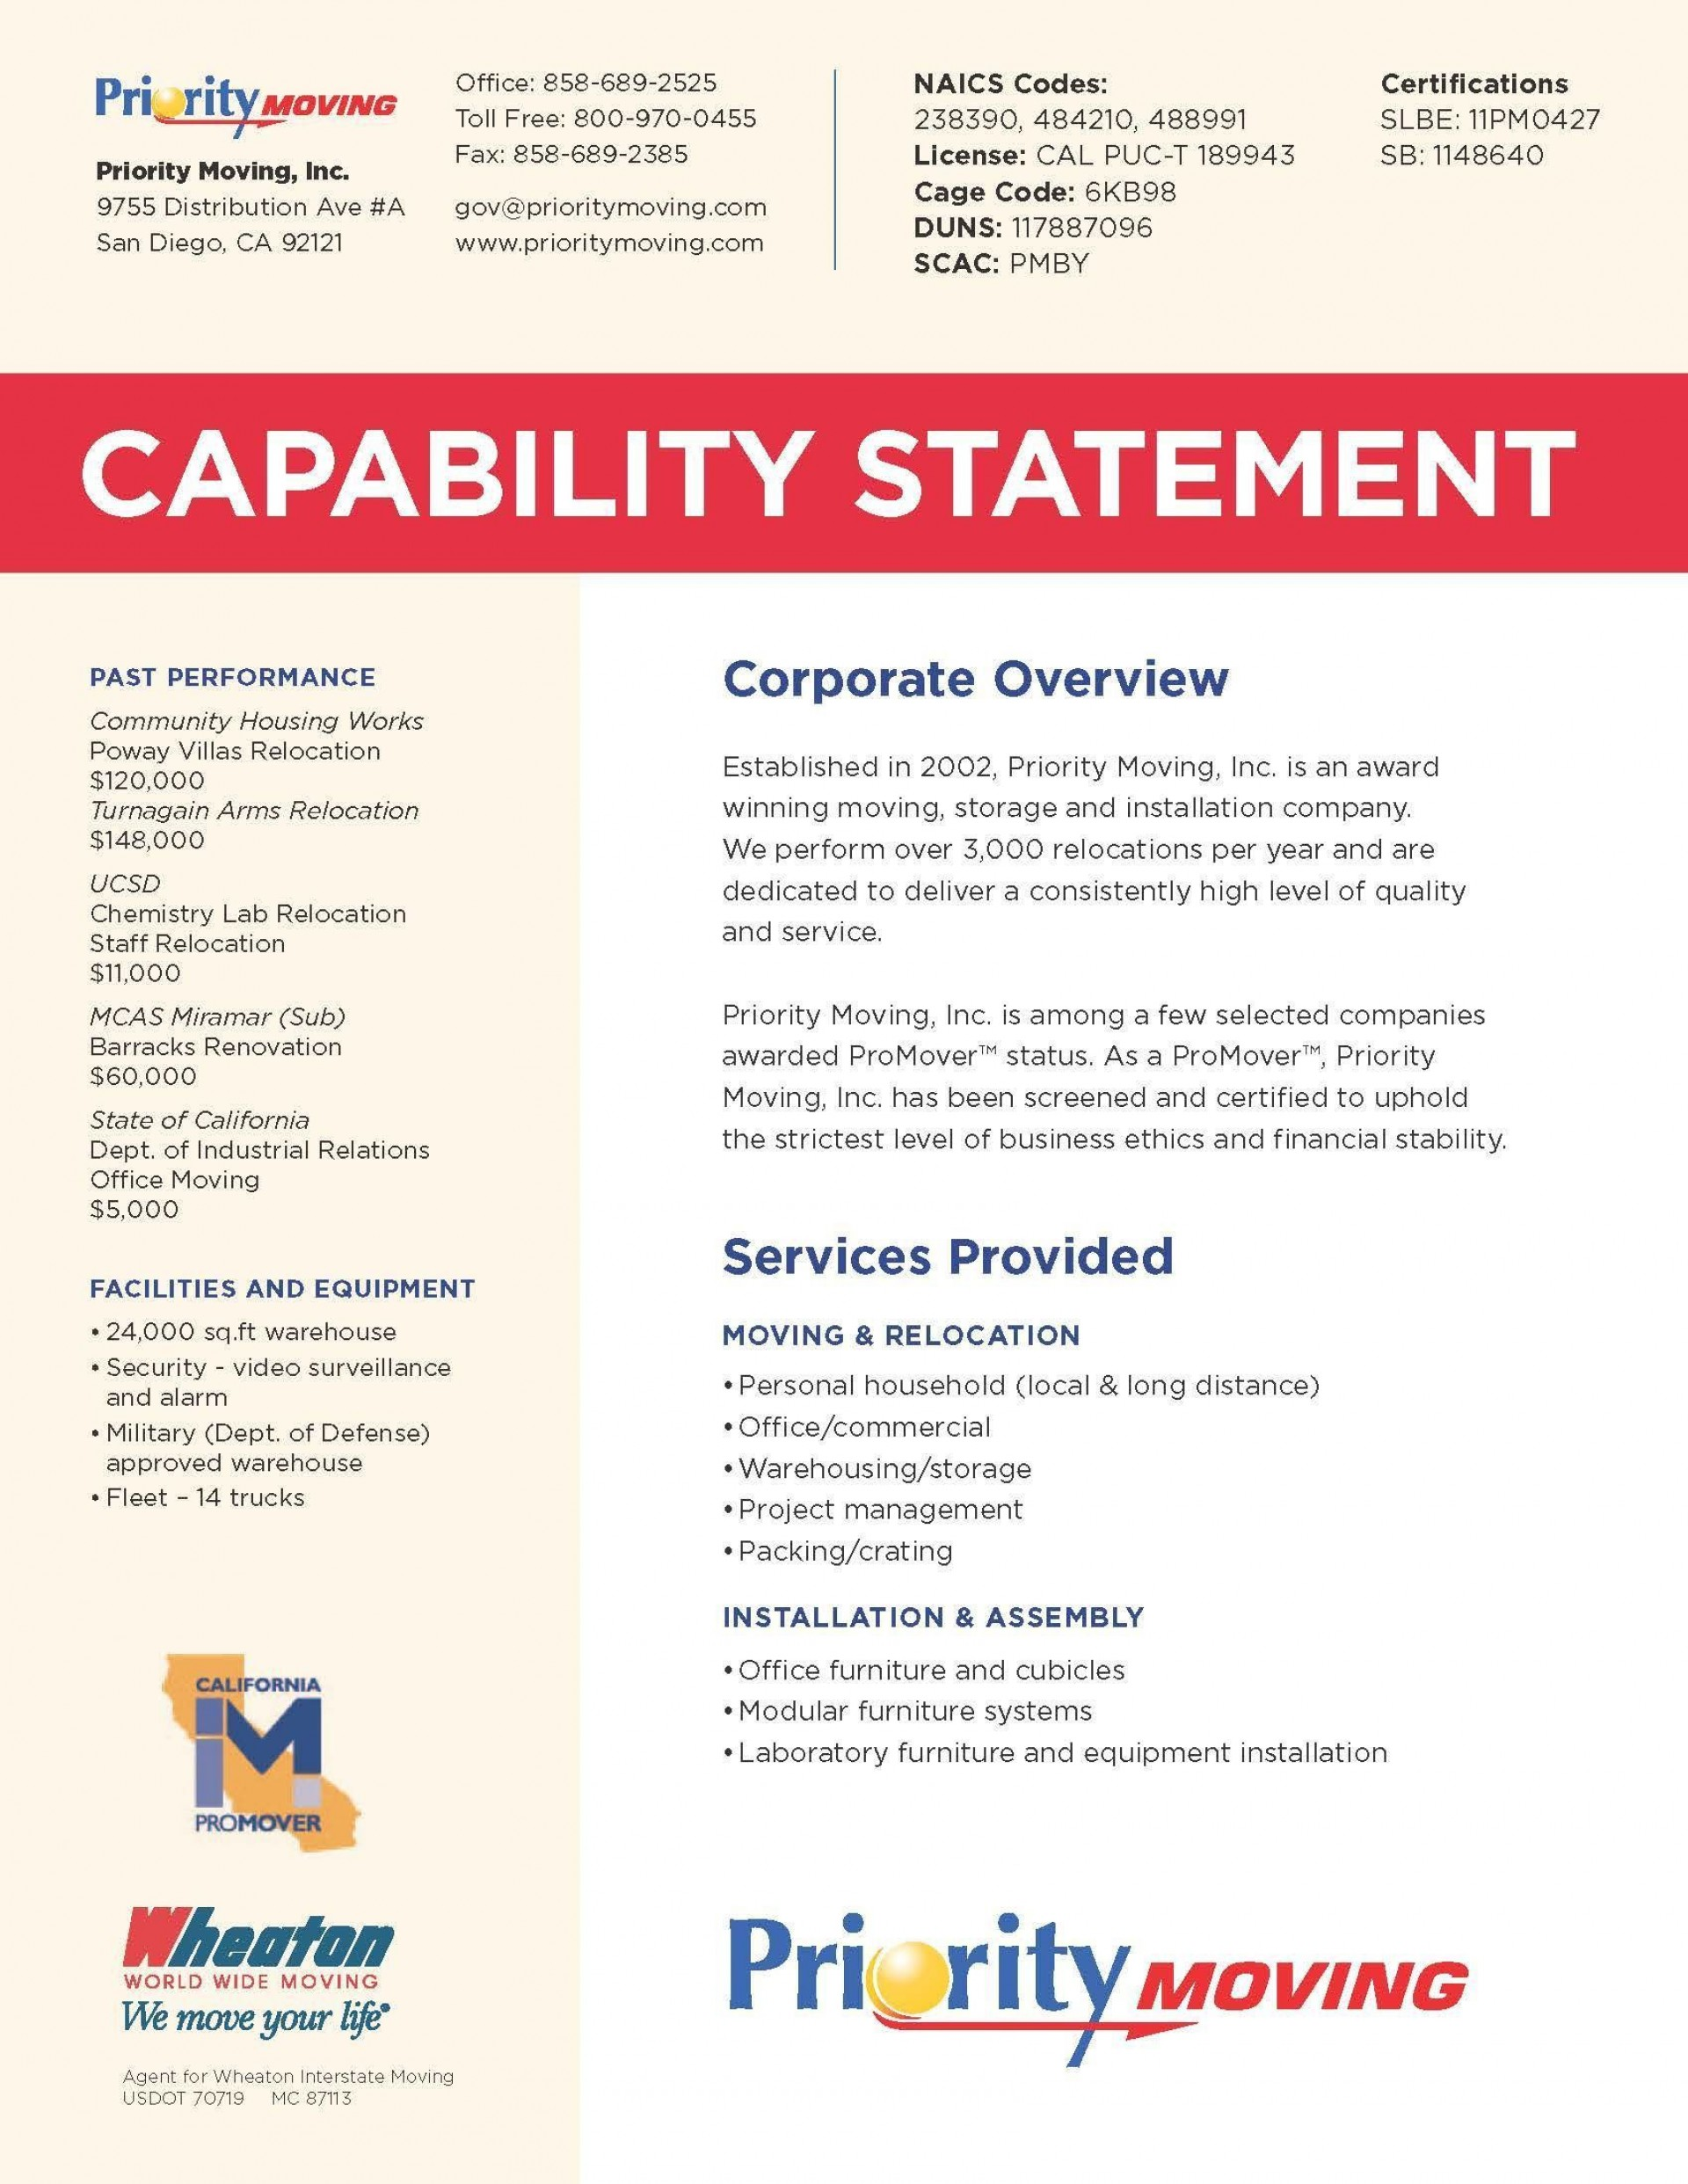 000 Unbelievable Capability Statement Template Free Example  Word Editable Design1920